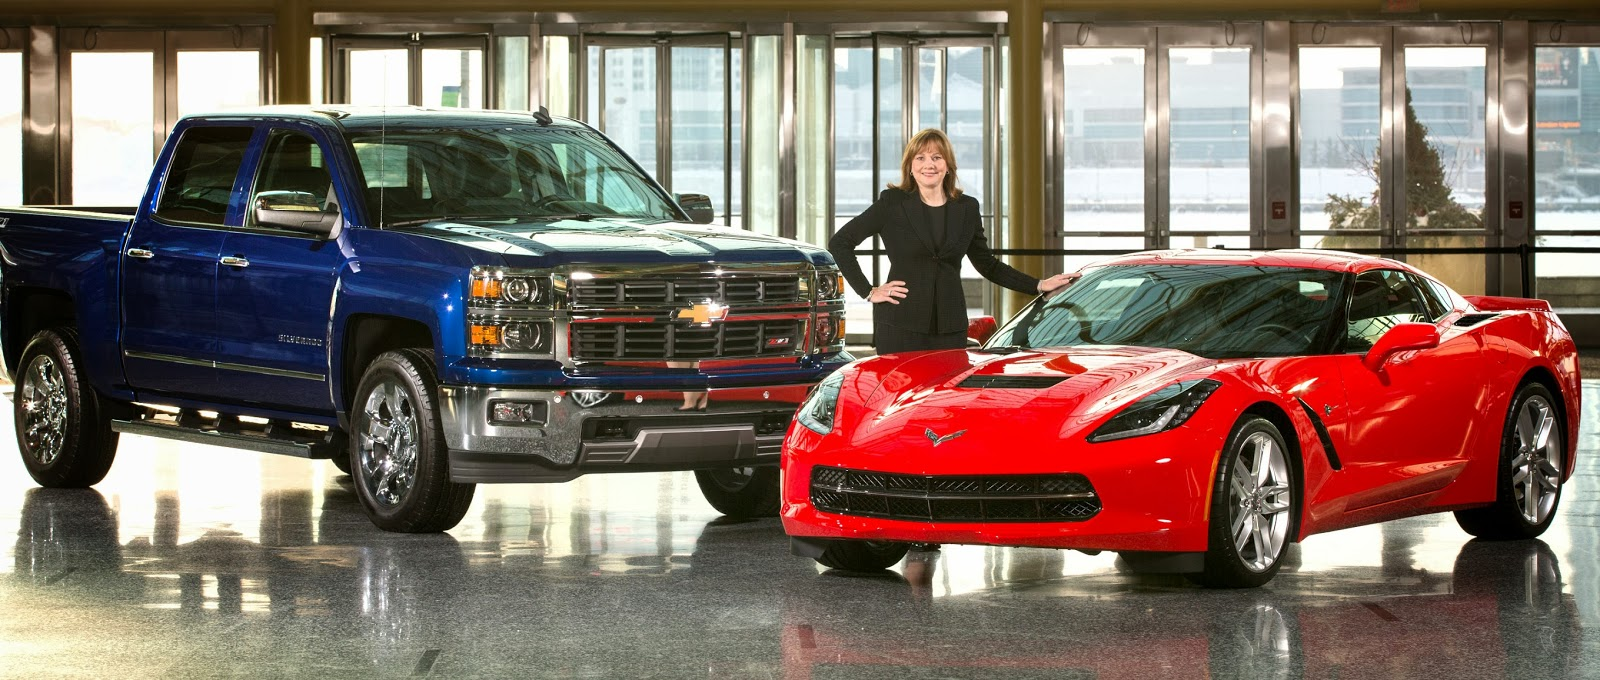 North American Car & Truck of the Year Announced